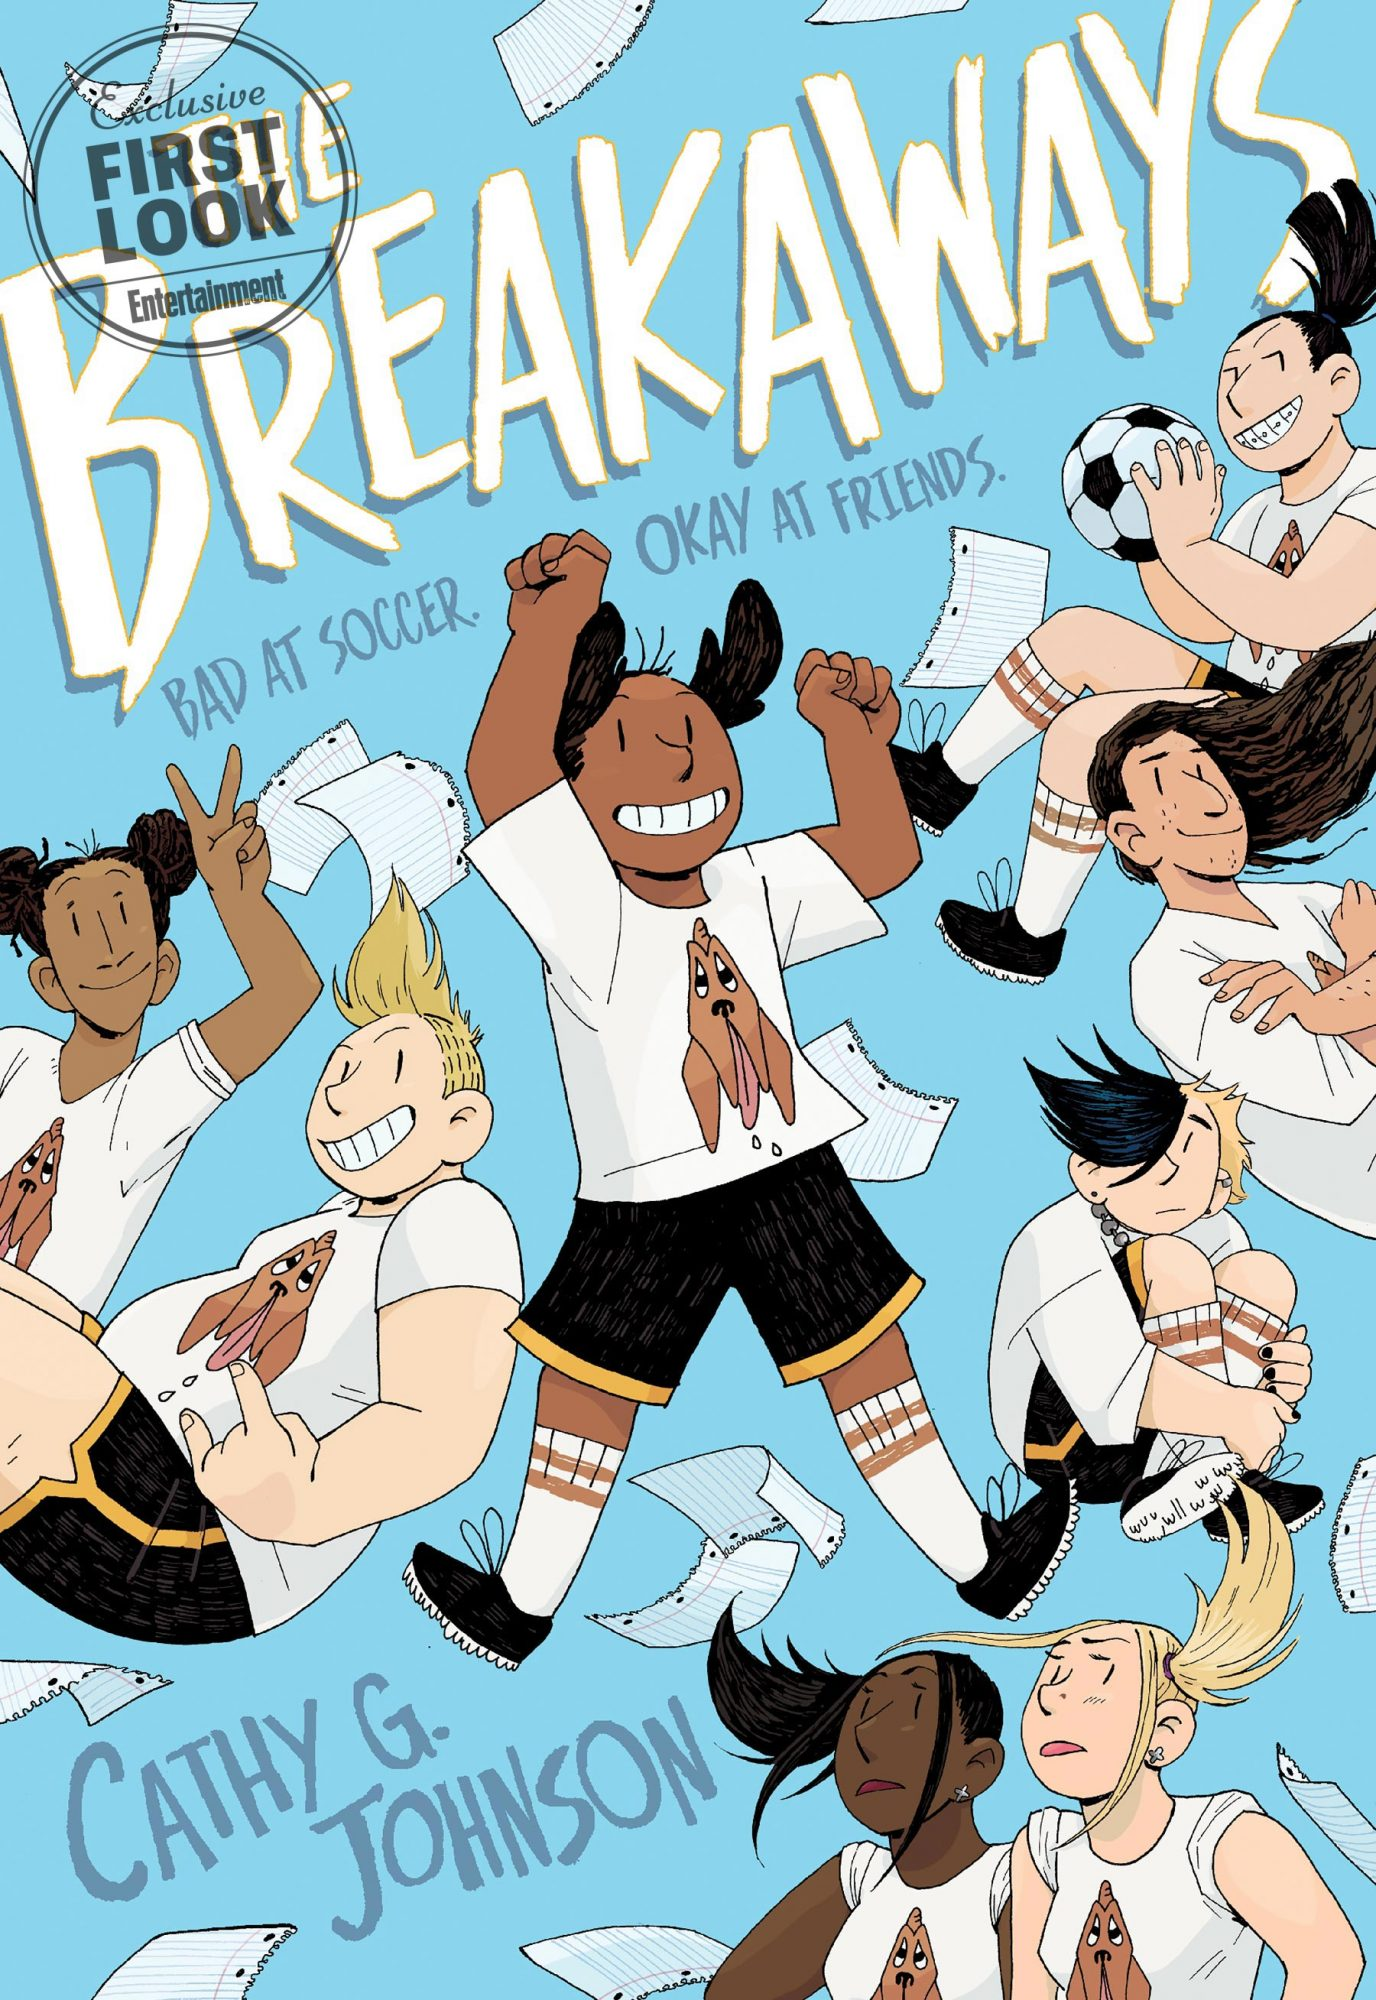 The Breakaways by Cathy G. Johnson (March 5)